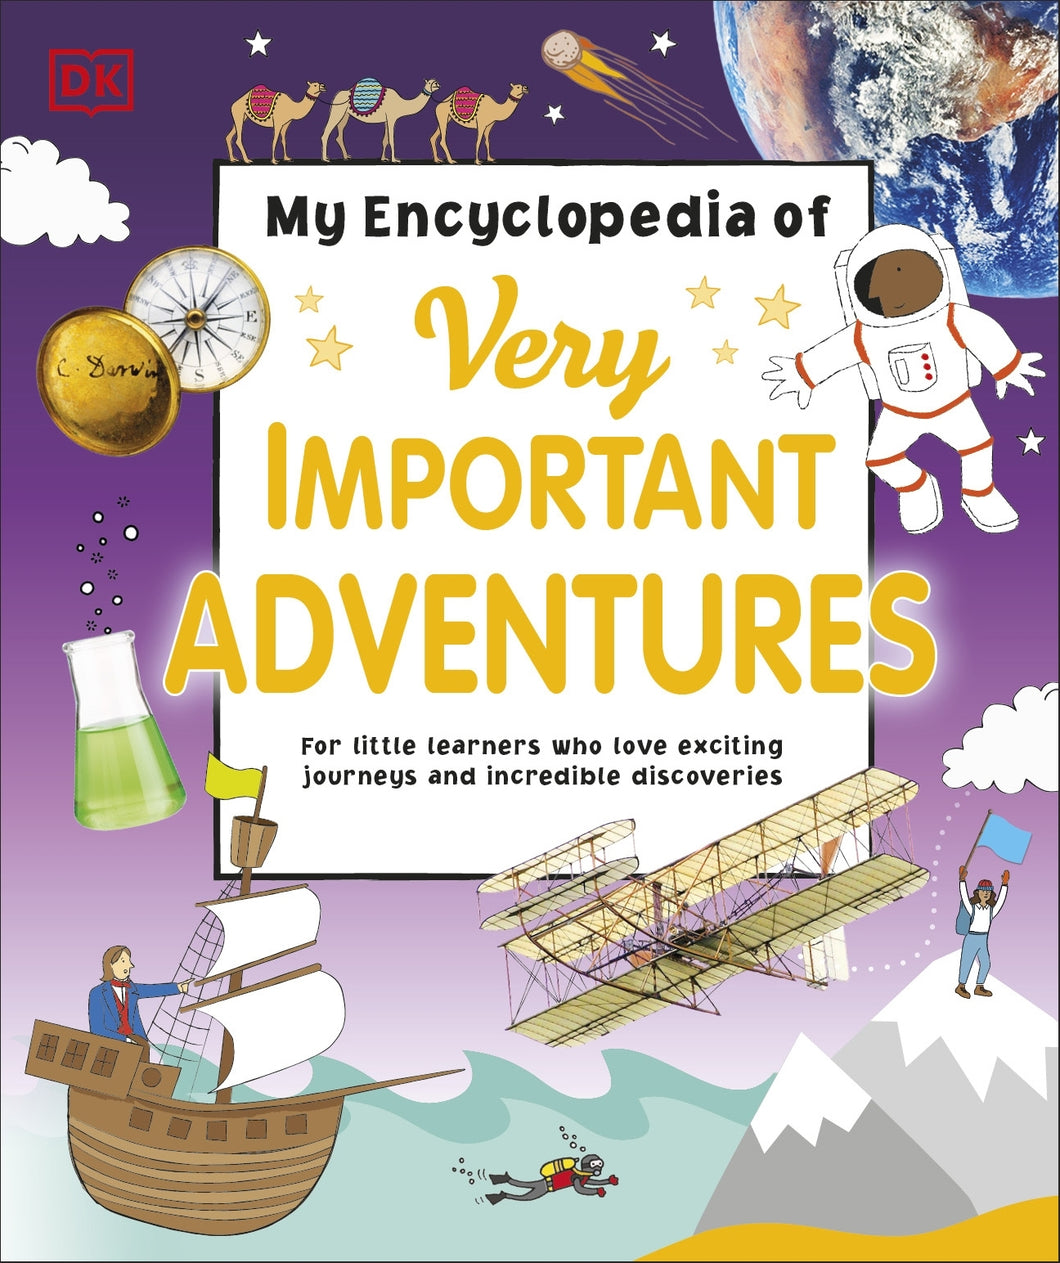 My Encyclopedia of Very Important Adventures by Dorling Kindersley